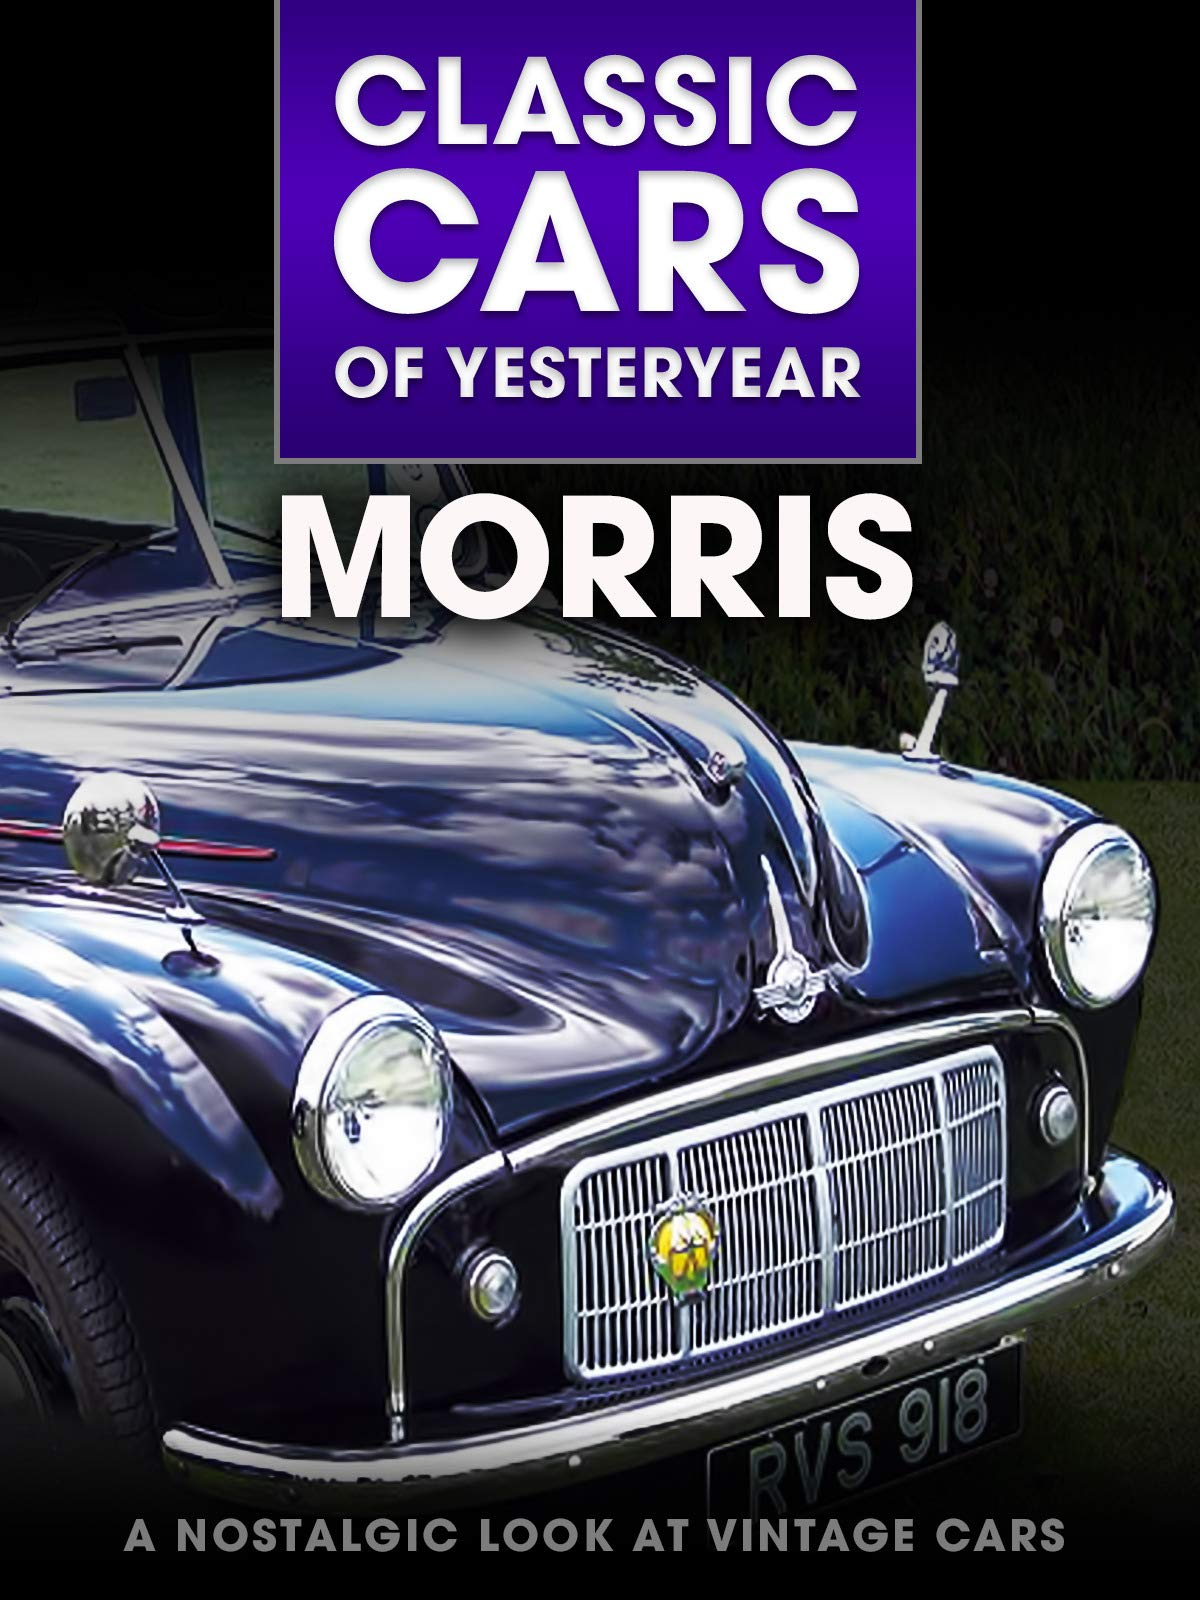 Classic Cars of Yesteryear: Morris - A Nostalgic Look at Vintage Cars